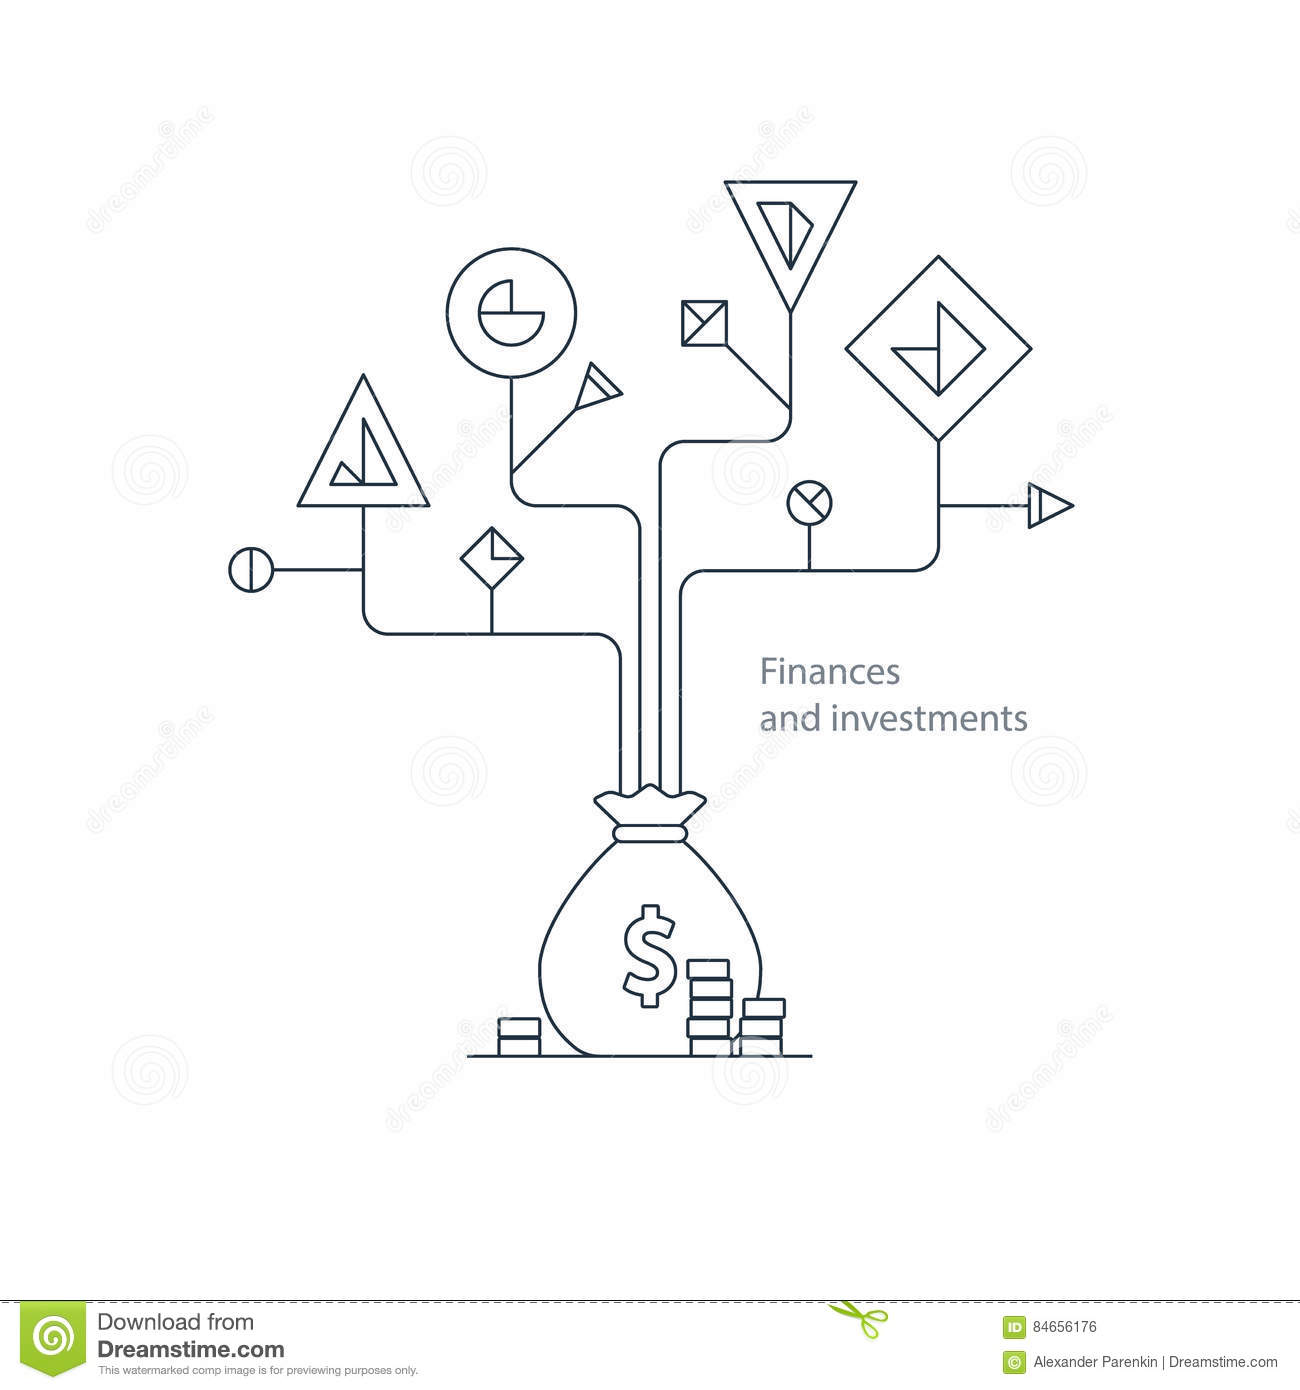 Business Plan Start Up Investment Finance Education Tree